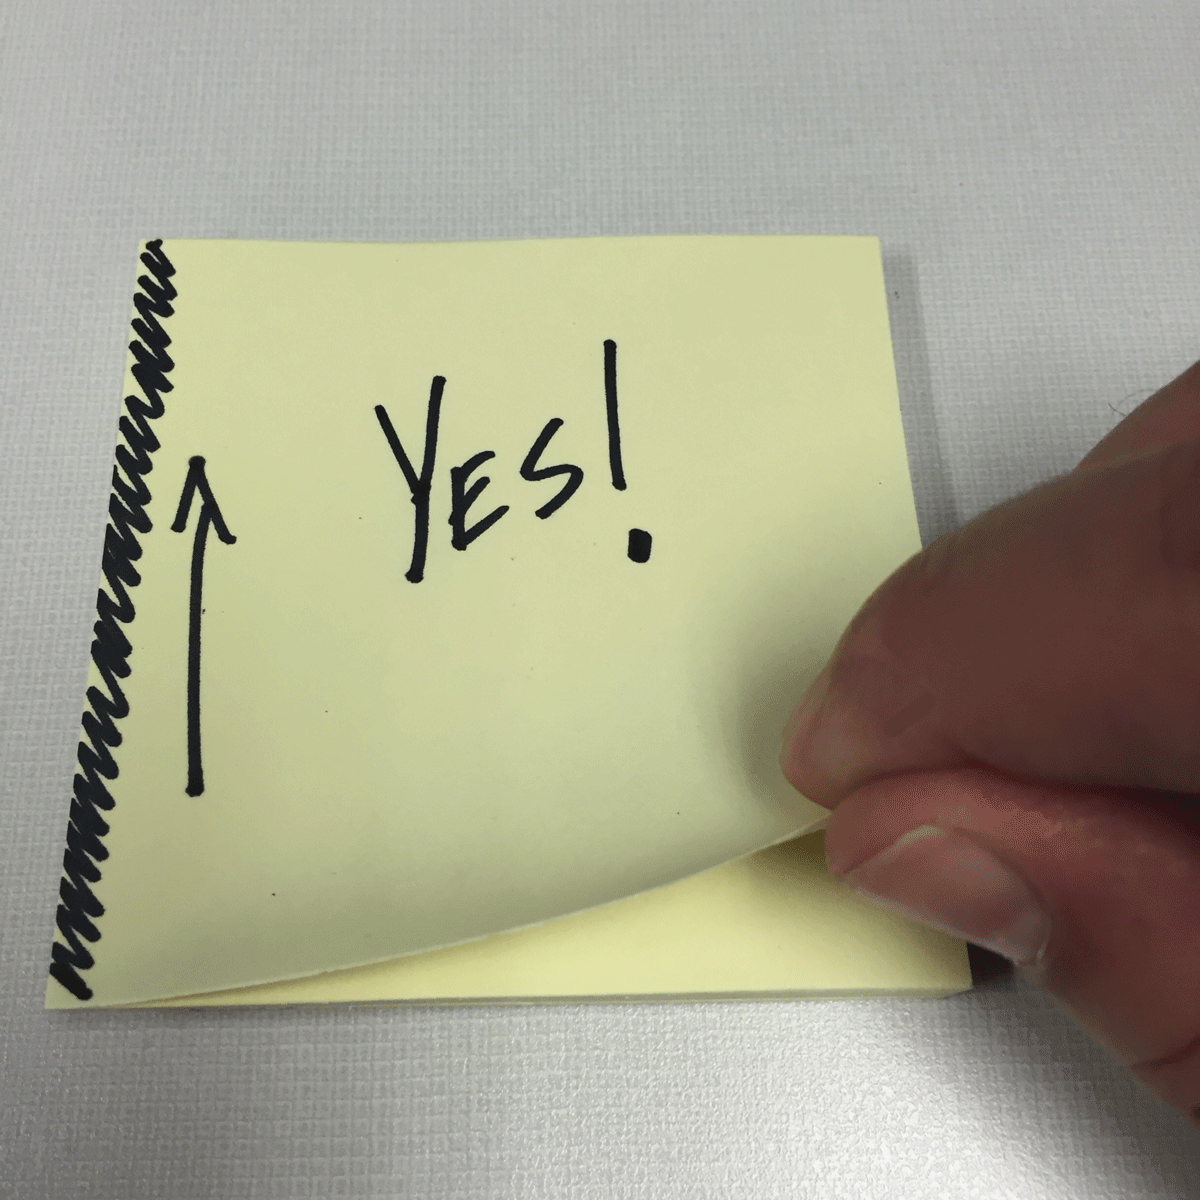 The right way to peel post-it notes